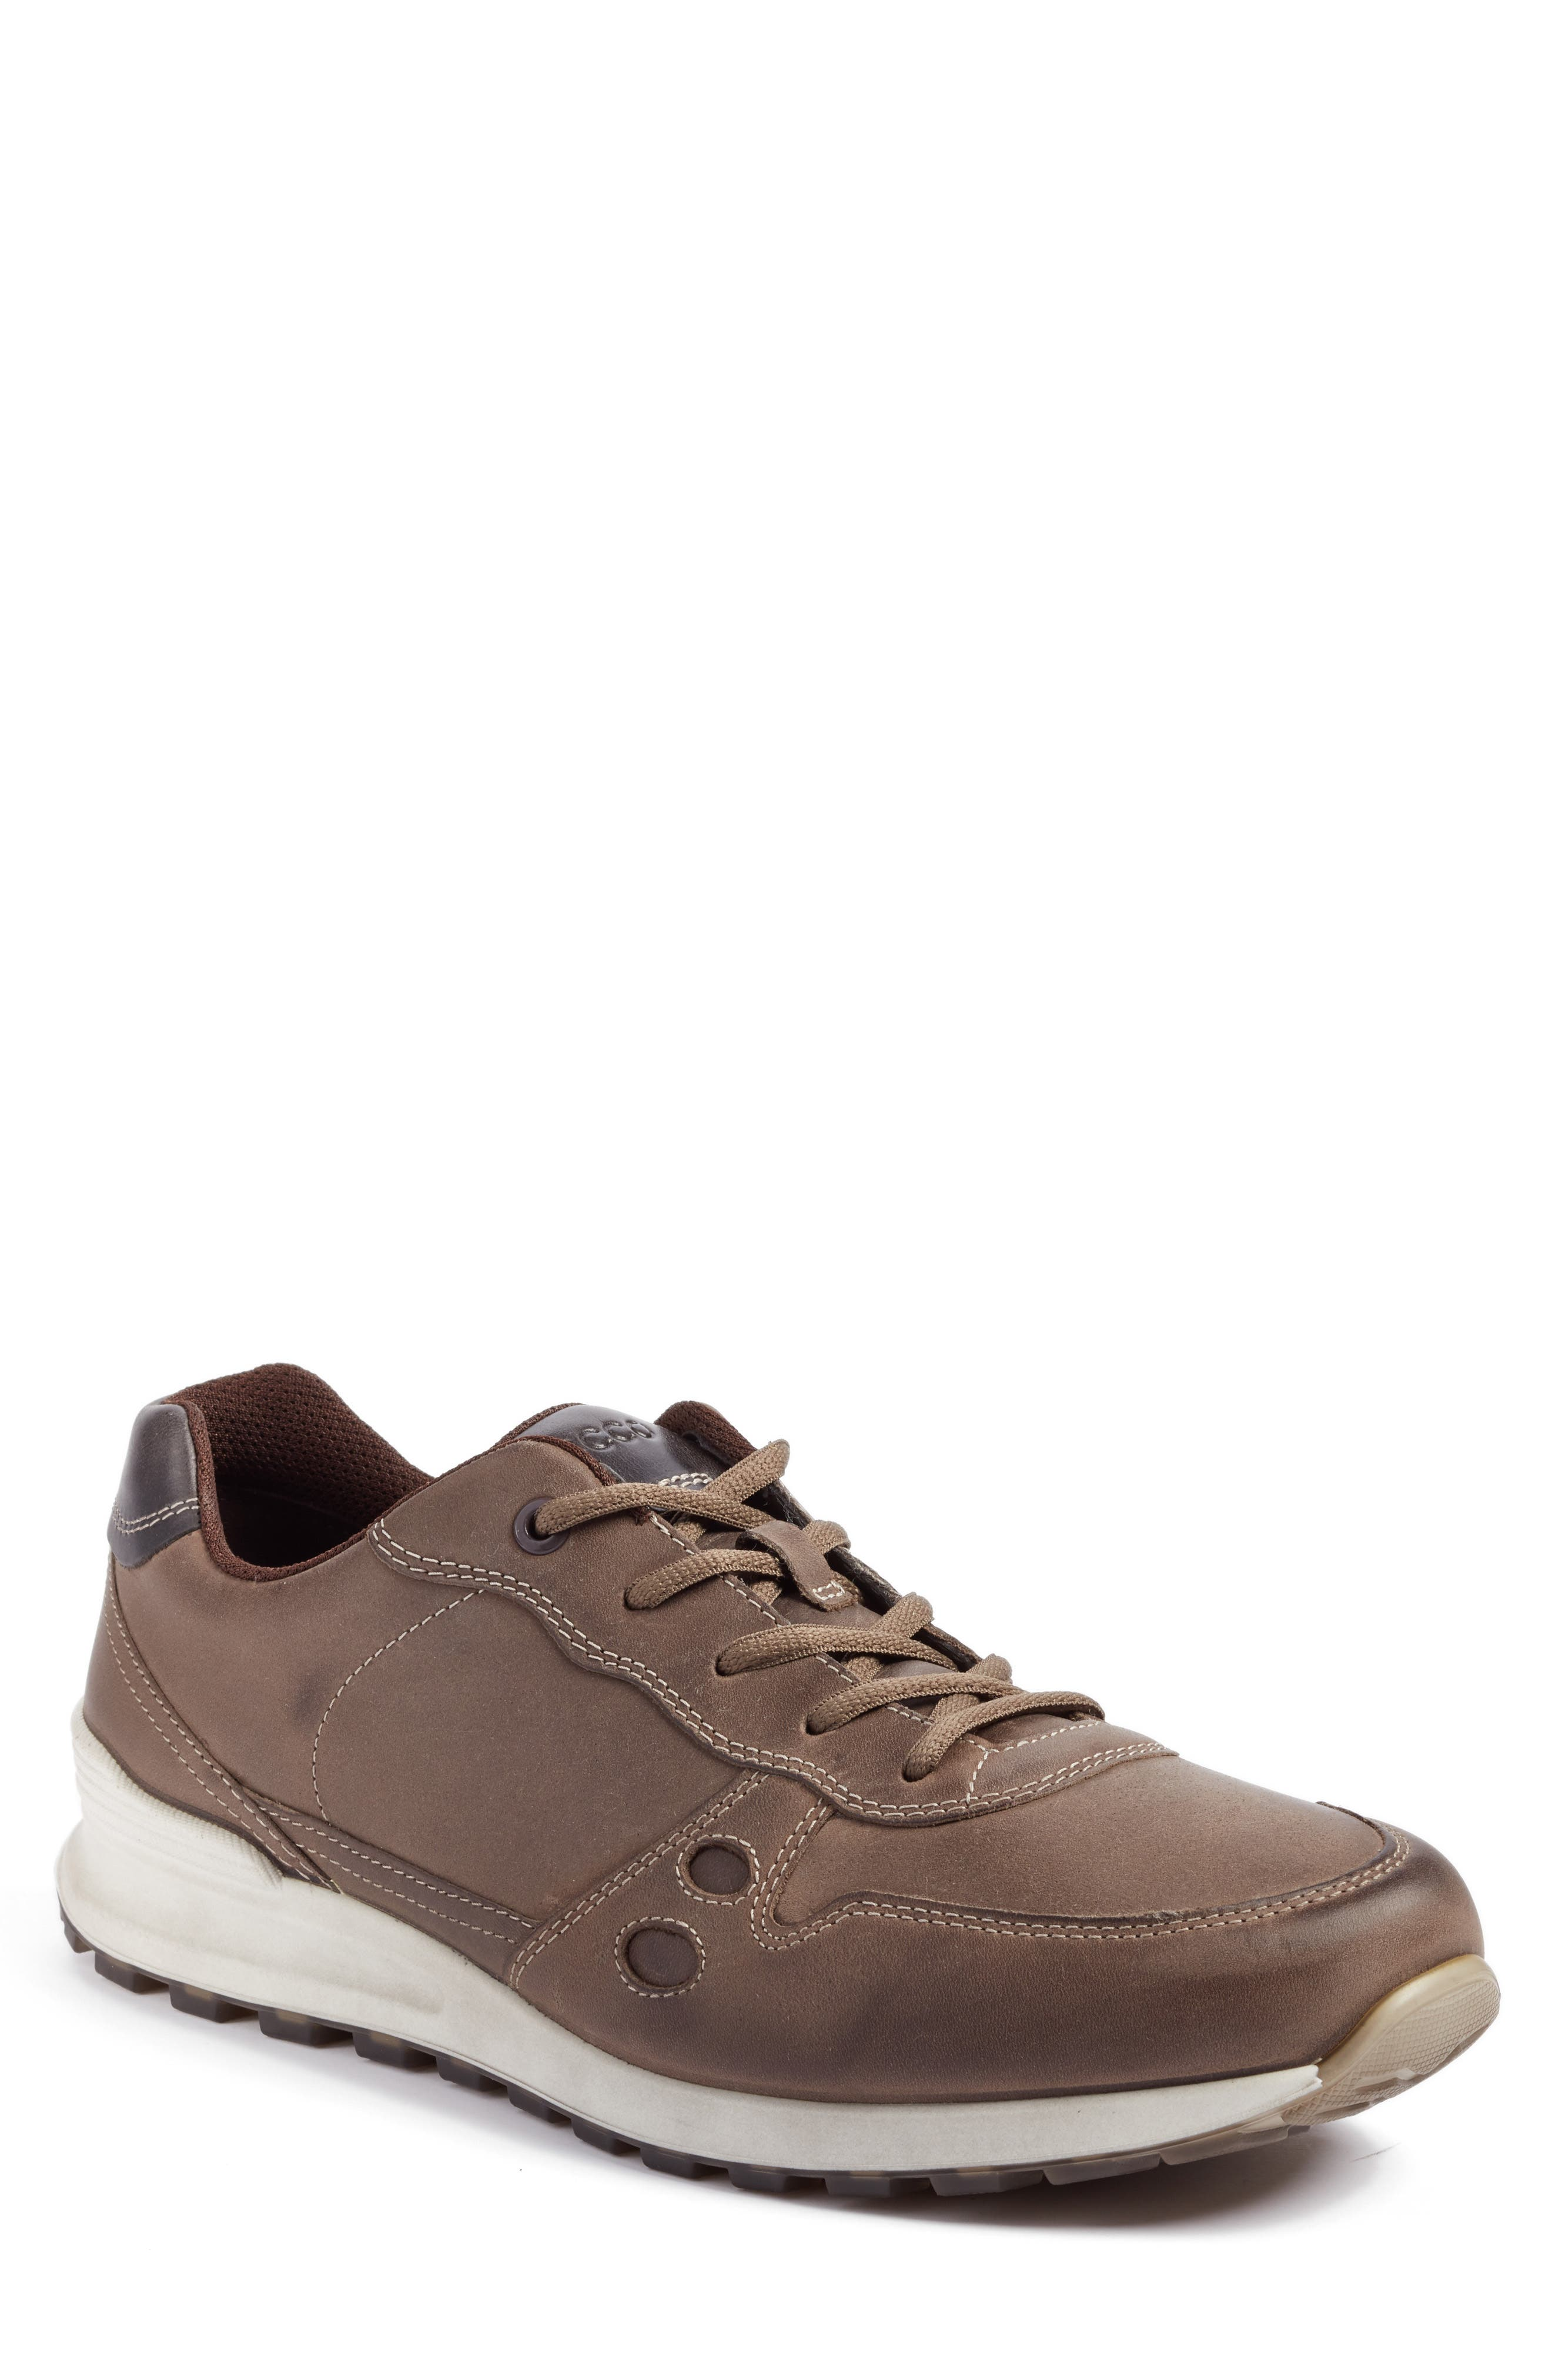 CS14 Retro Sneaker,                         Main,                         color, Stone/ Moonless Leather